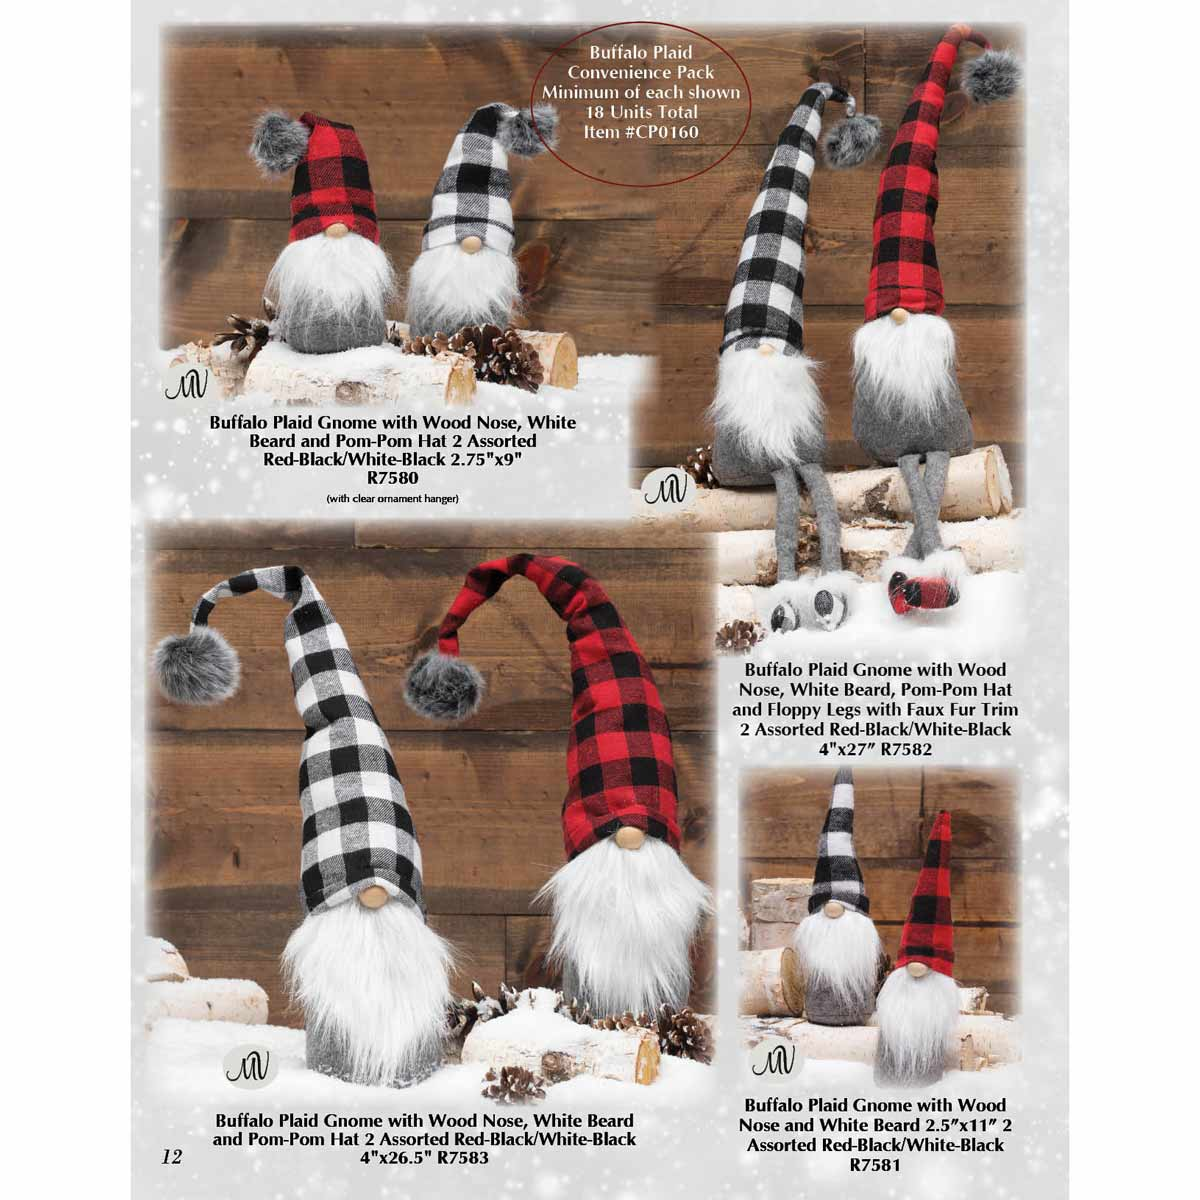 BUFFALO PLAID GNOME CONVENIENCE PACK 18 UNITS